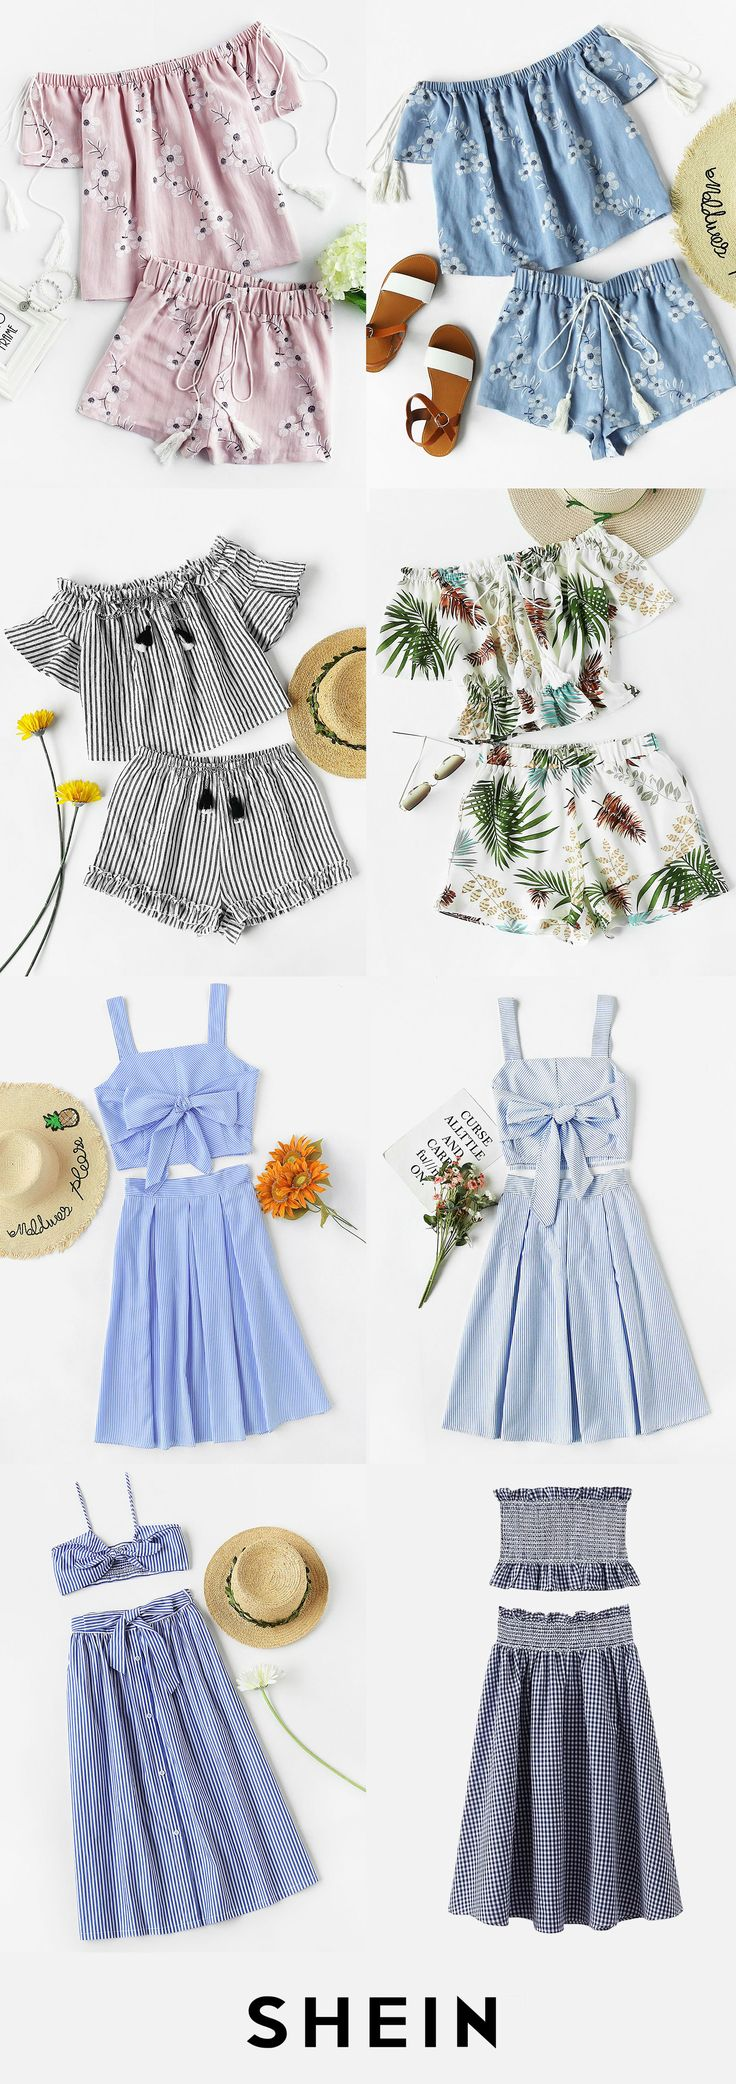 best style images on pinterest frock dress acapulco mexico